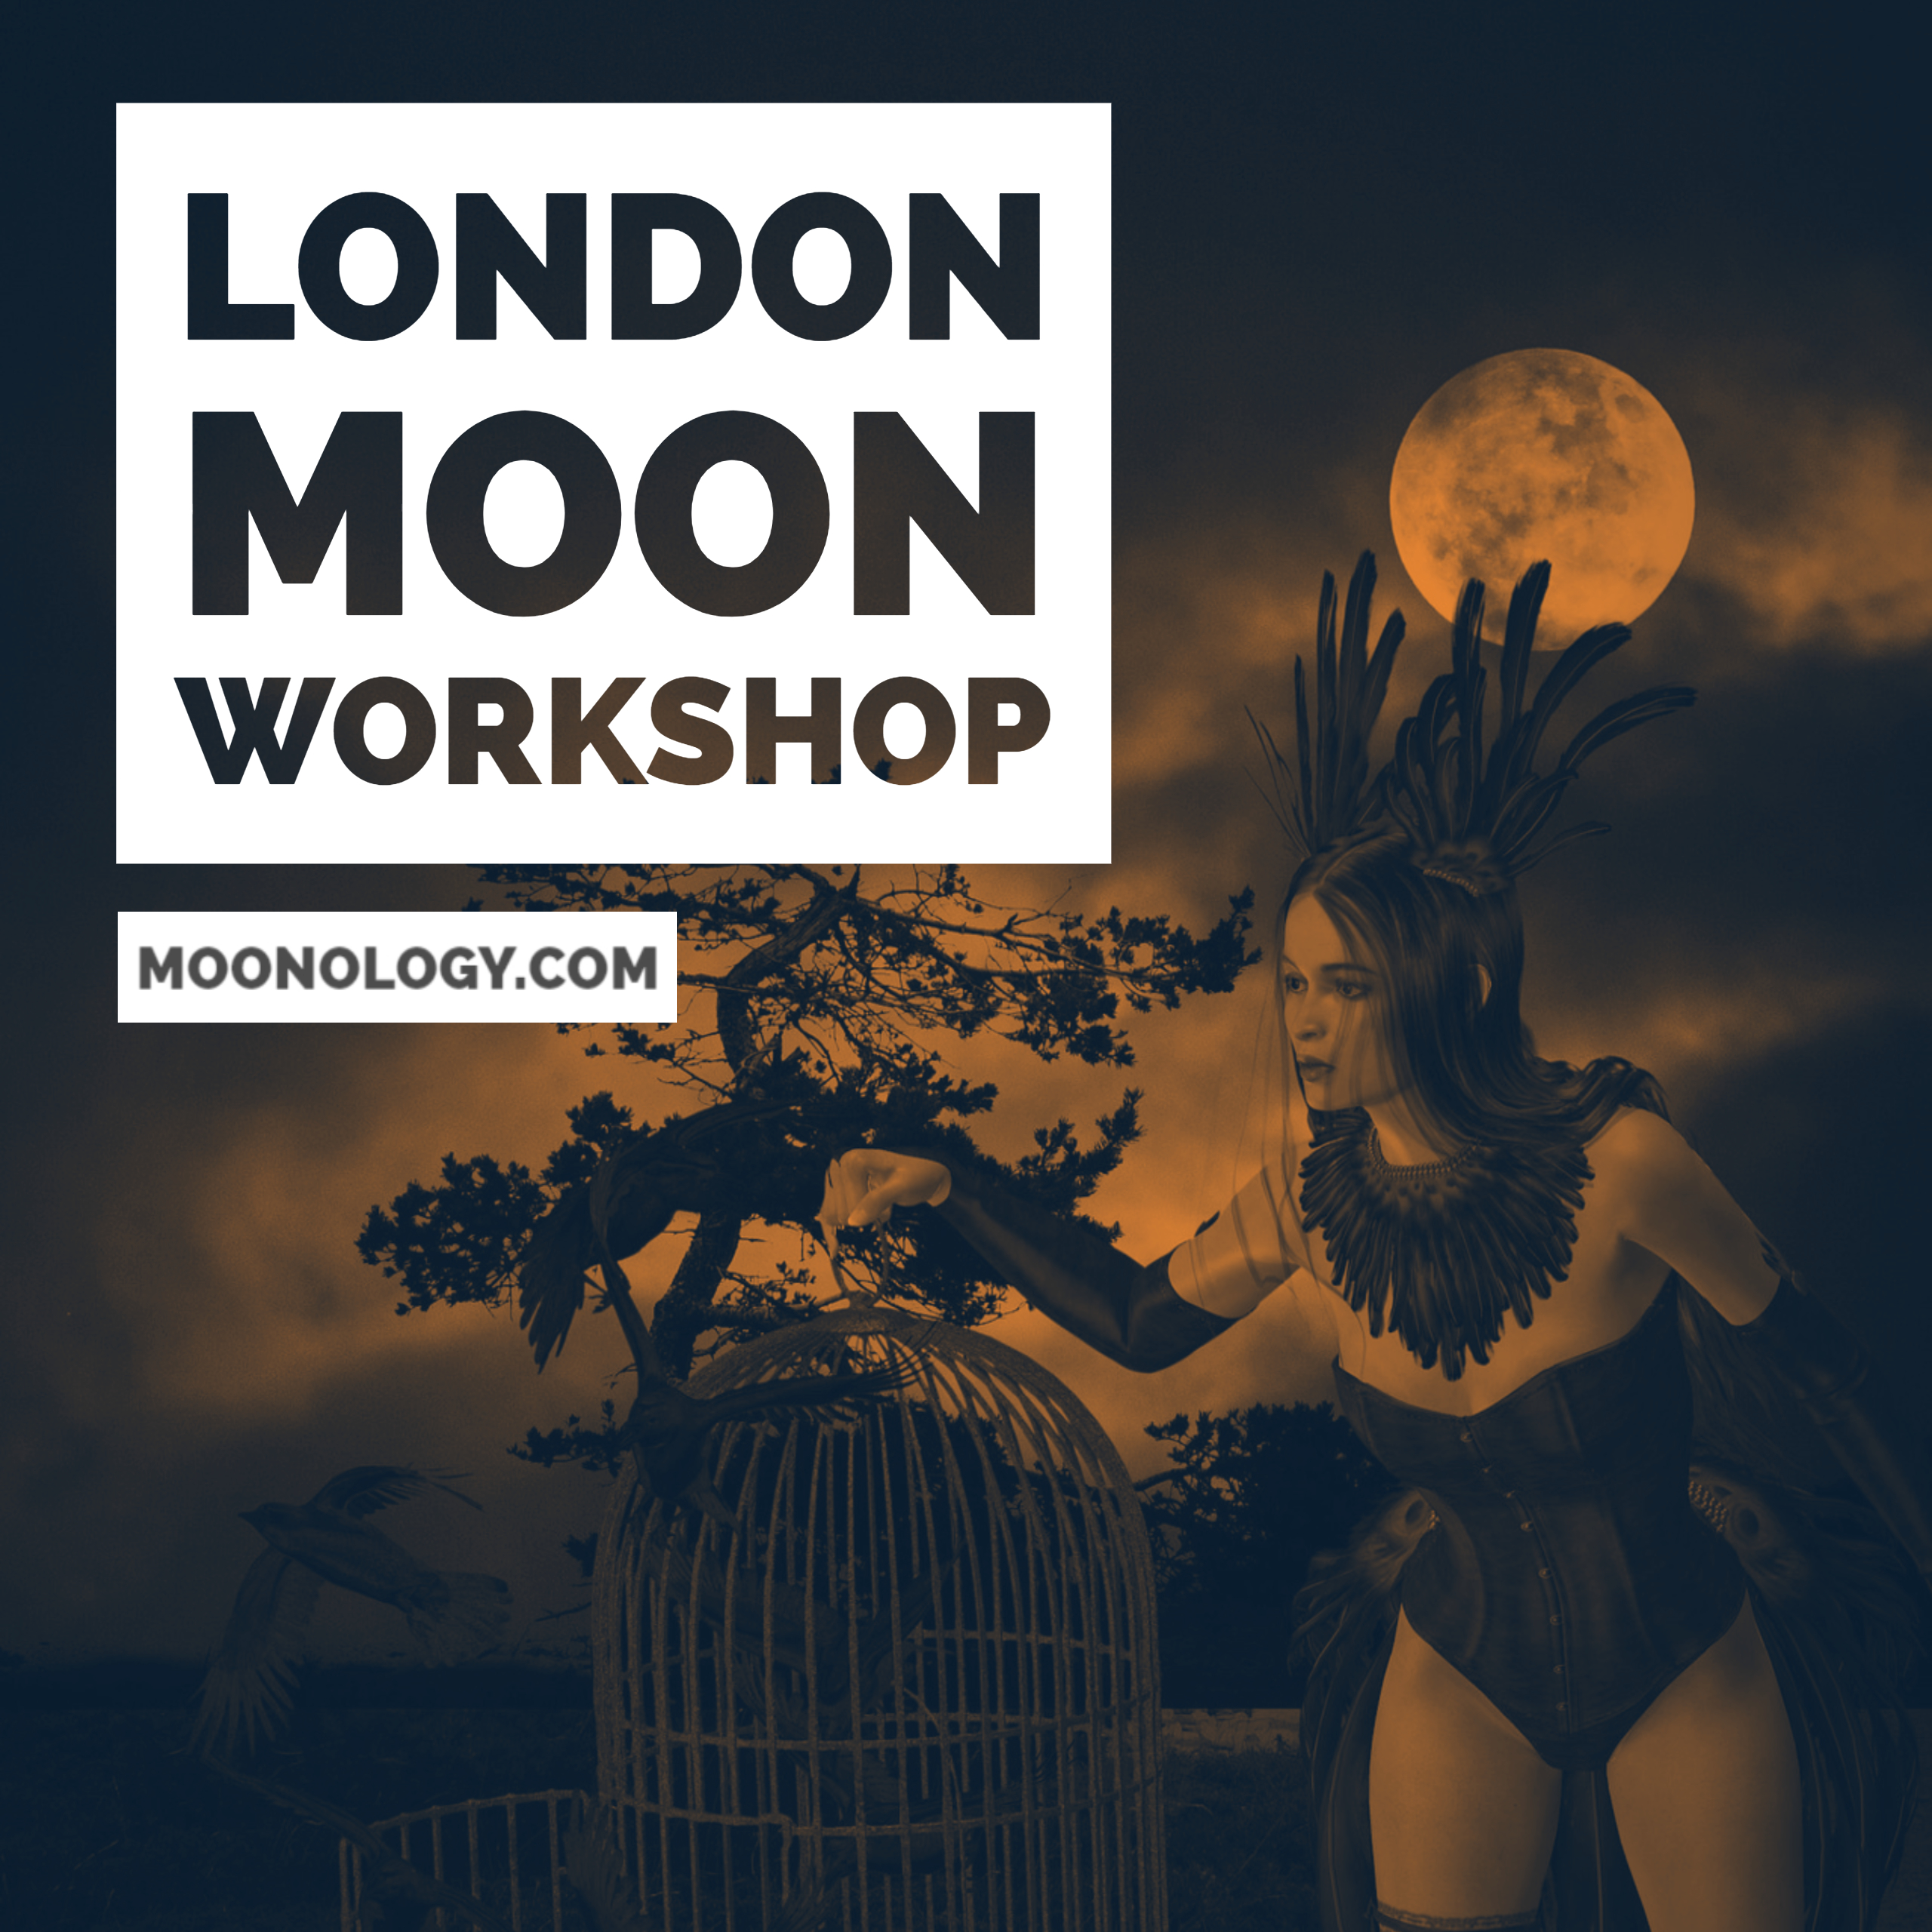 London workshop announcement